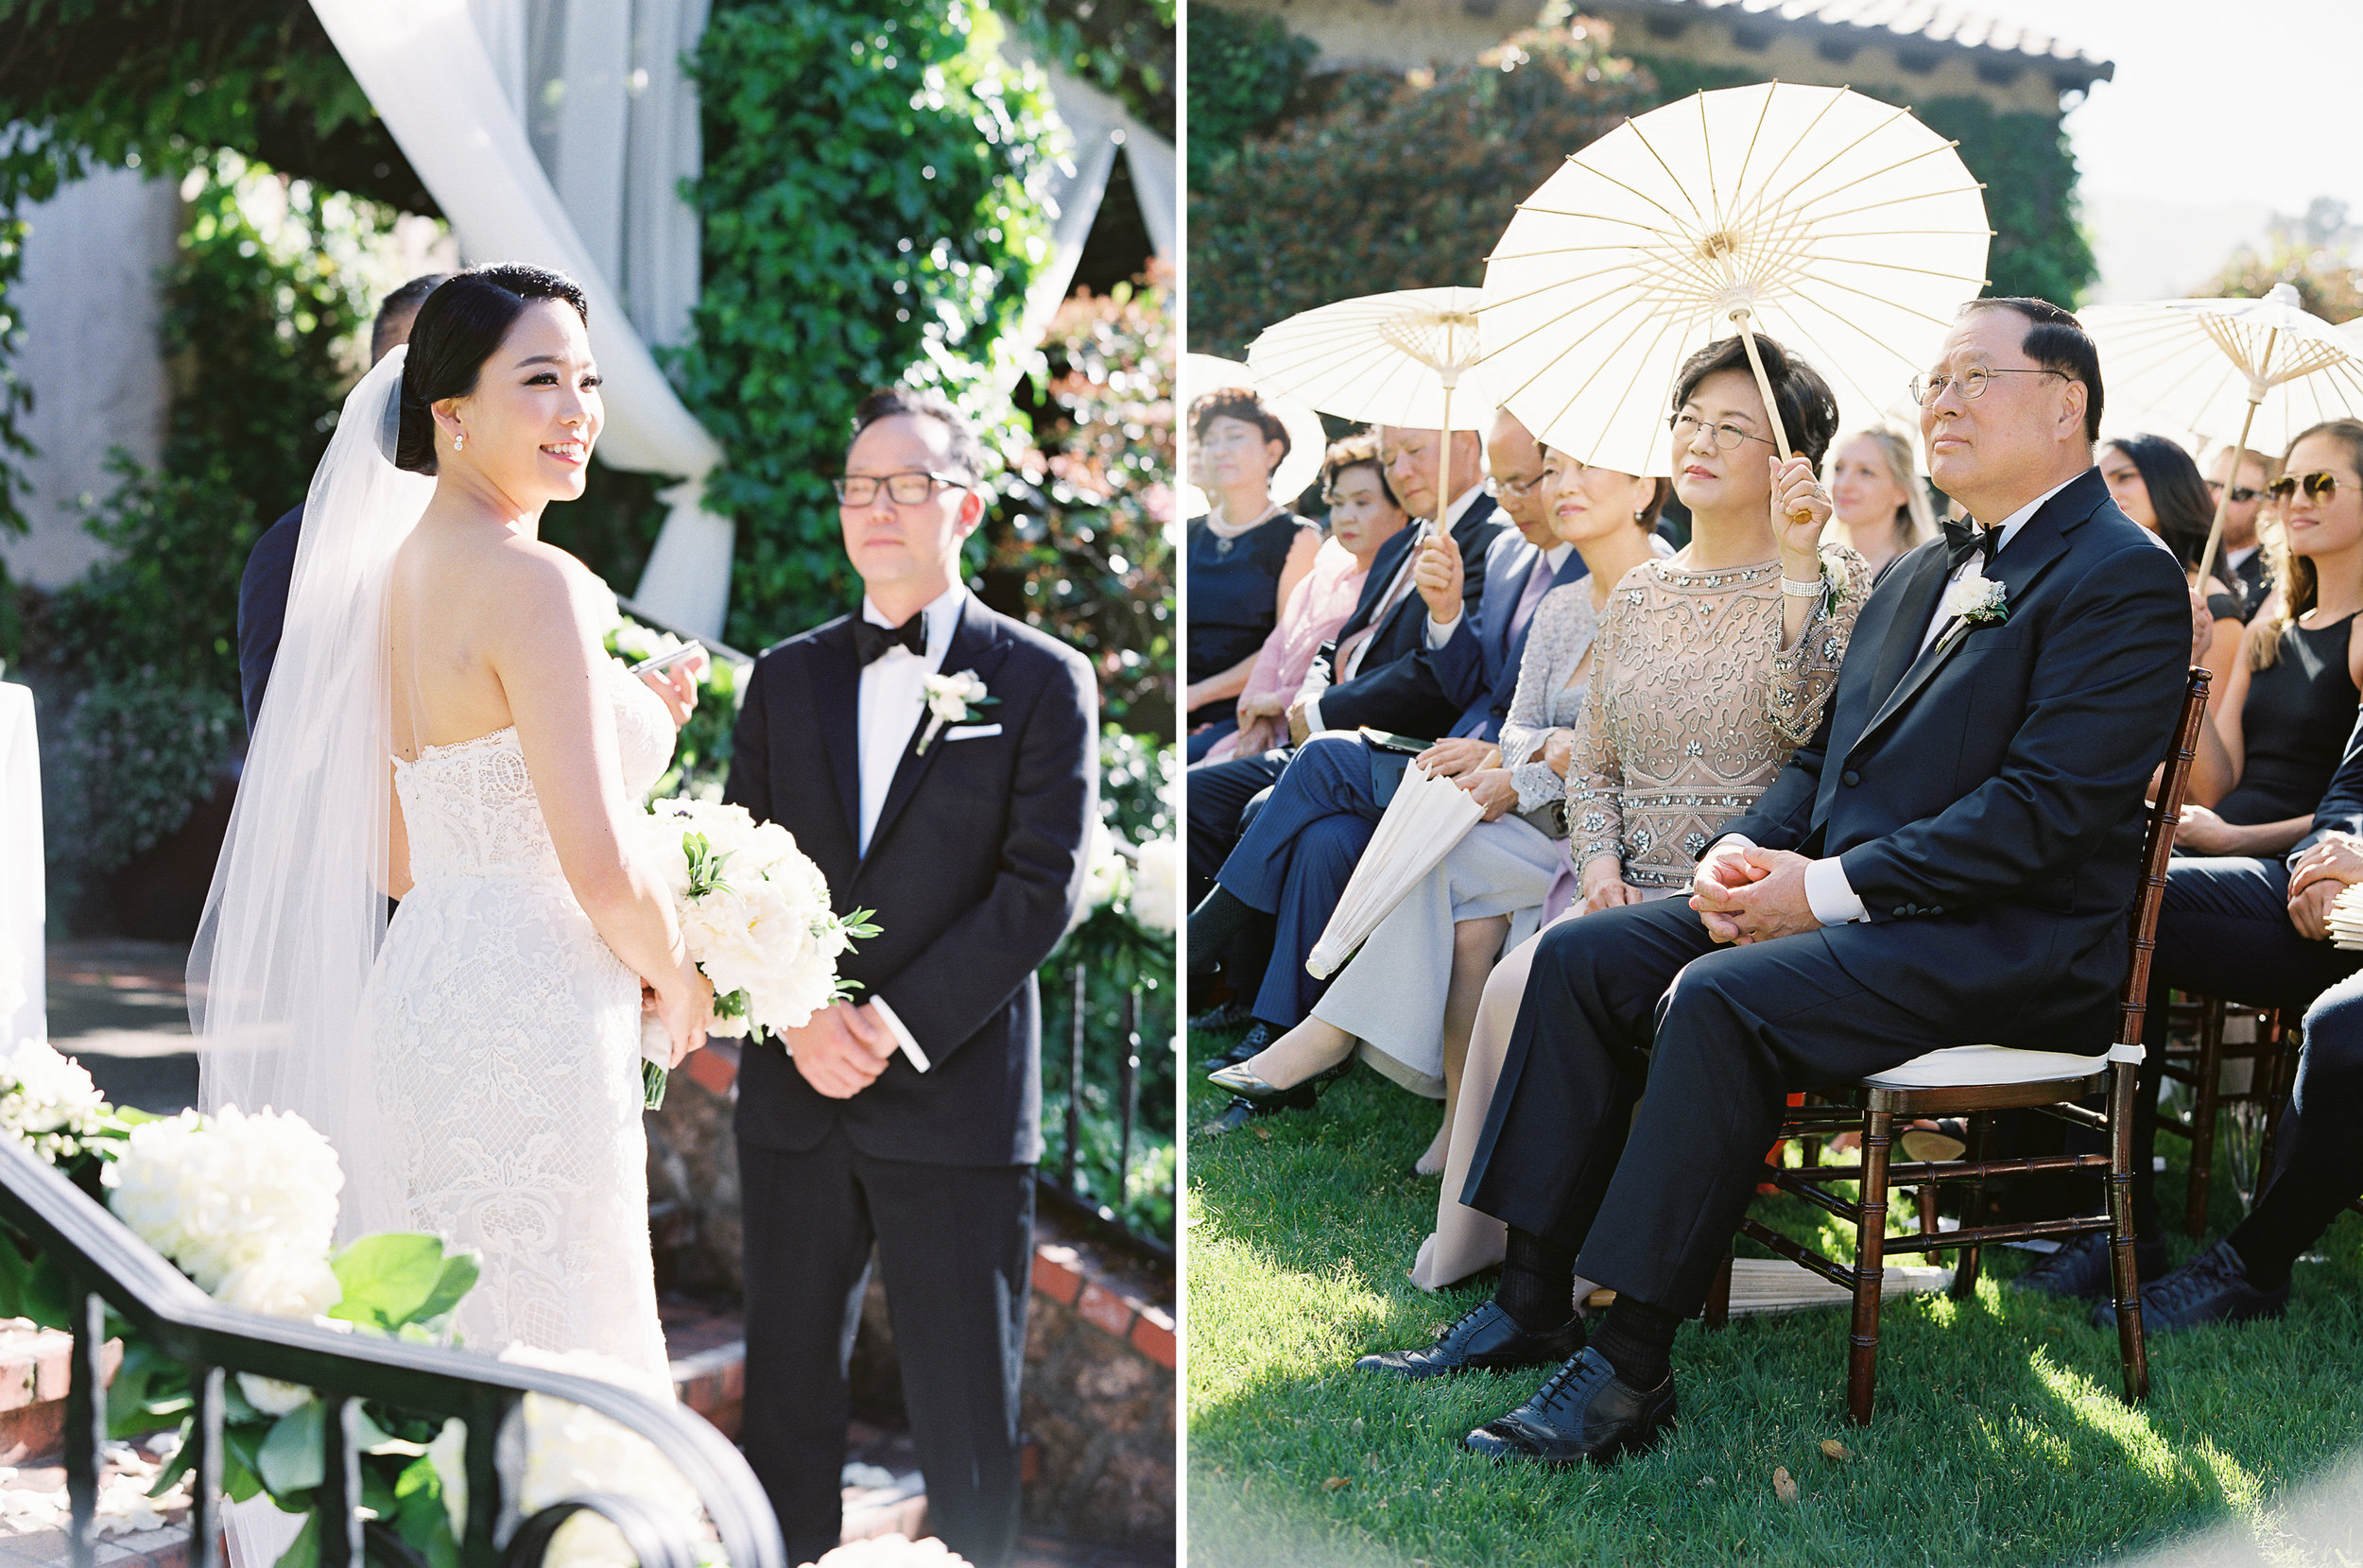 Meghan Mehan Photography - Sonoma Golf Club Wedding - California Film Wedding Photographer - 041.jpg